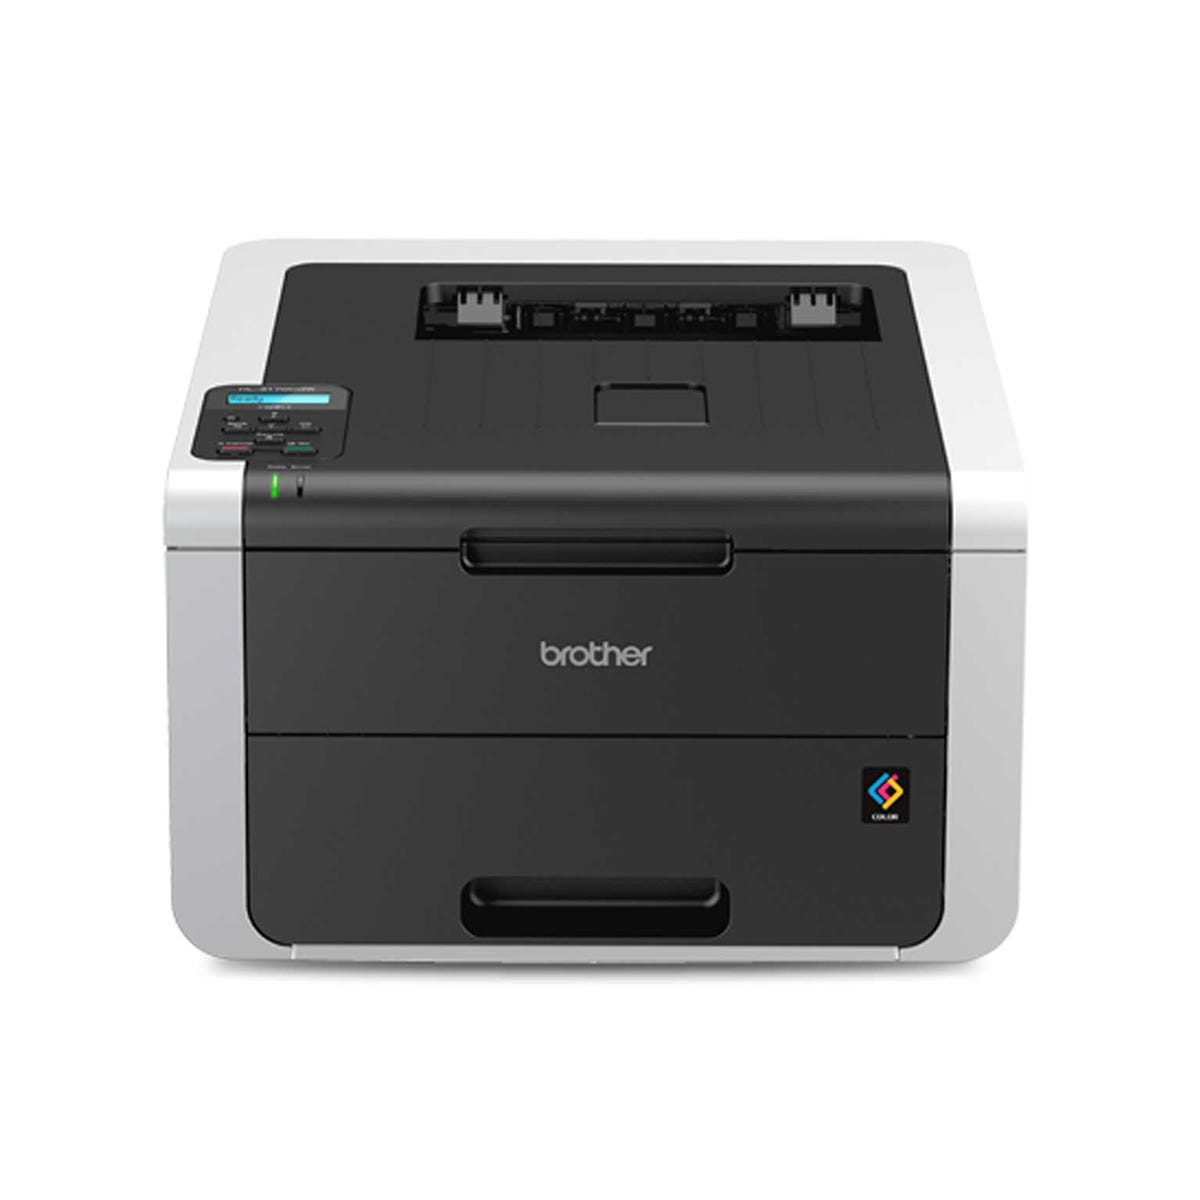 Image of Brother HL-3170CDW Colour Wifi Networking Printer